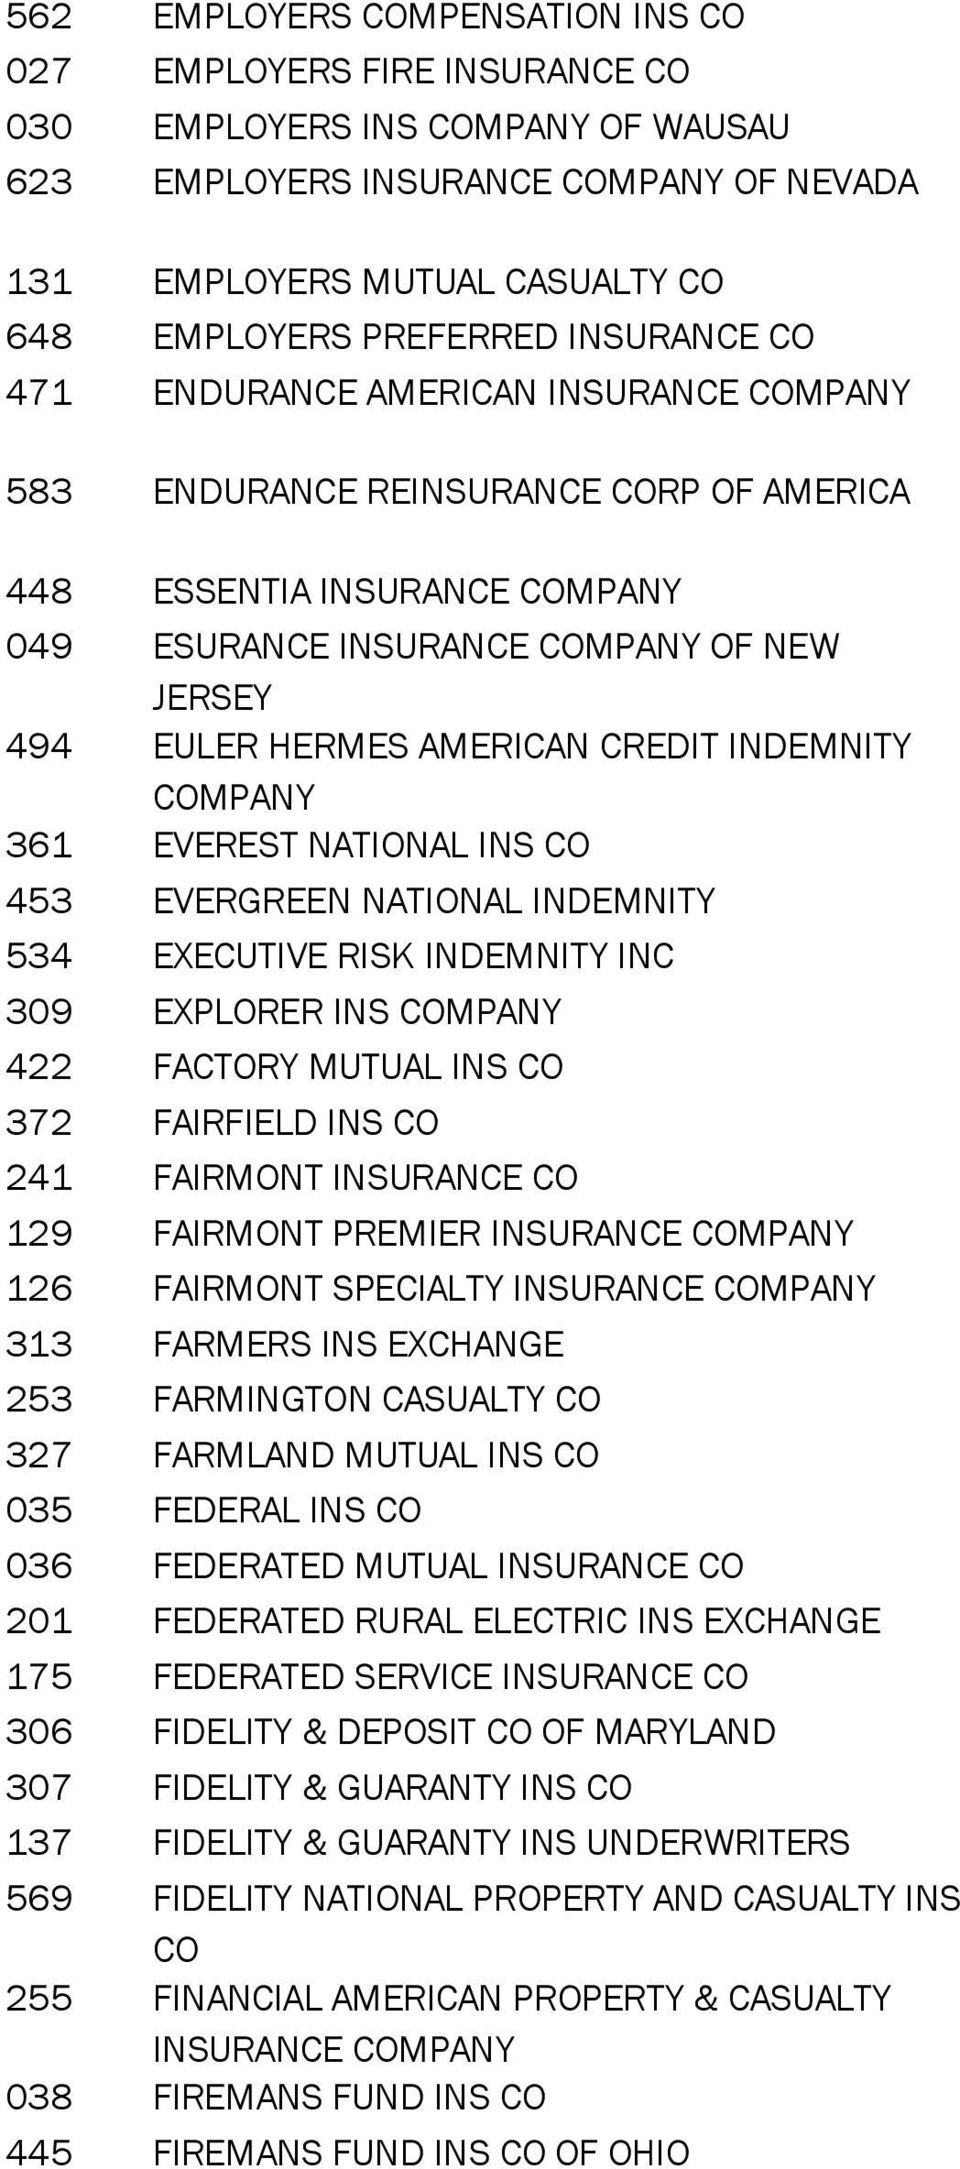 INS CO 453 EVERGREEN NATIONAL INDEMNITY 534 EXECUTIVE RISK INDEMNITY INC 309 EXPLORER INS 422 FACTORY MUTUAL INS CO 372 FAIRFIELD INS CO 241 FAIRMONT INSURANCE CO 129 FAIRMONT PREMIER INSURANCE 126